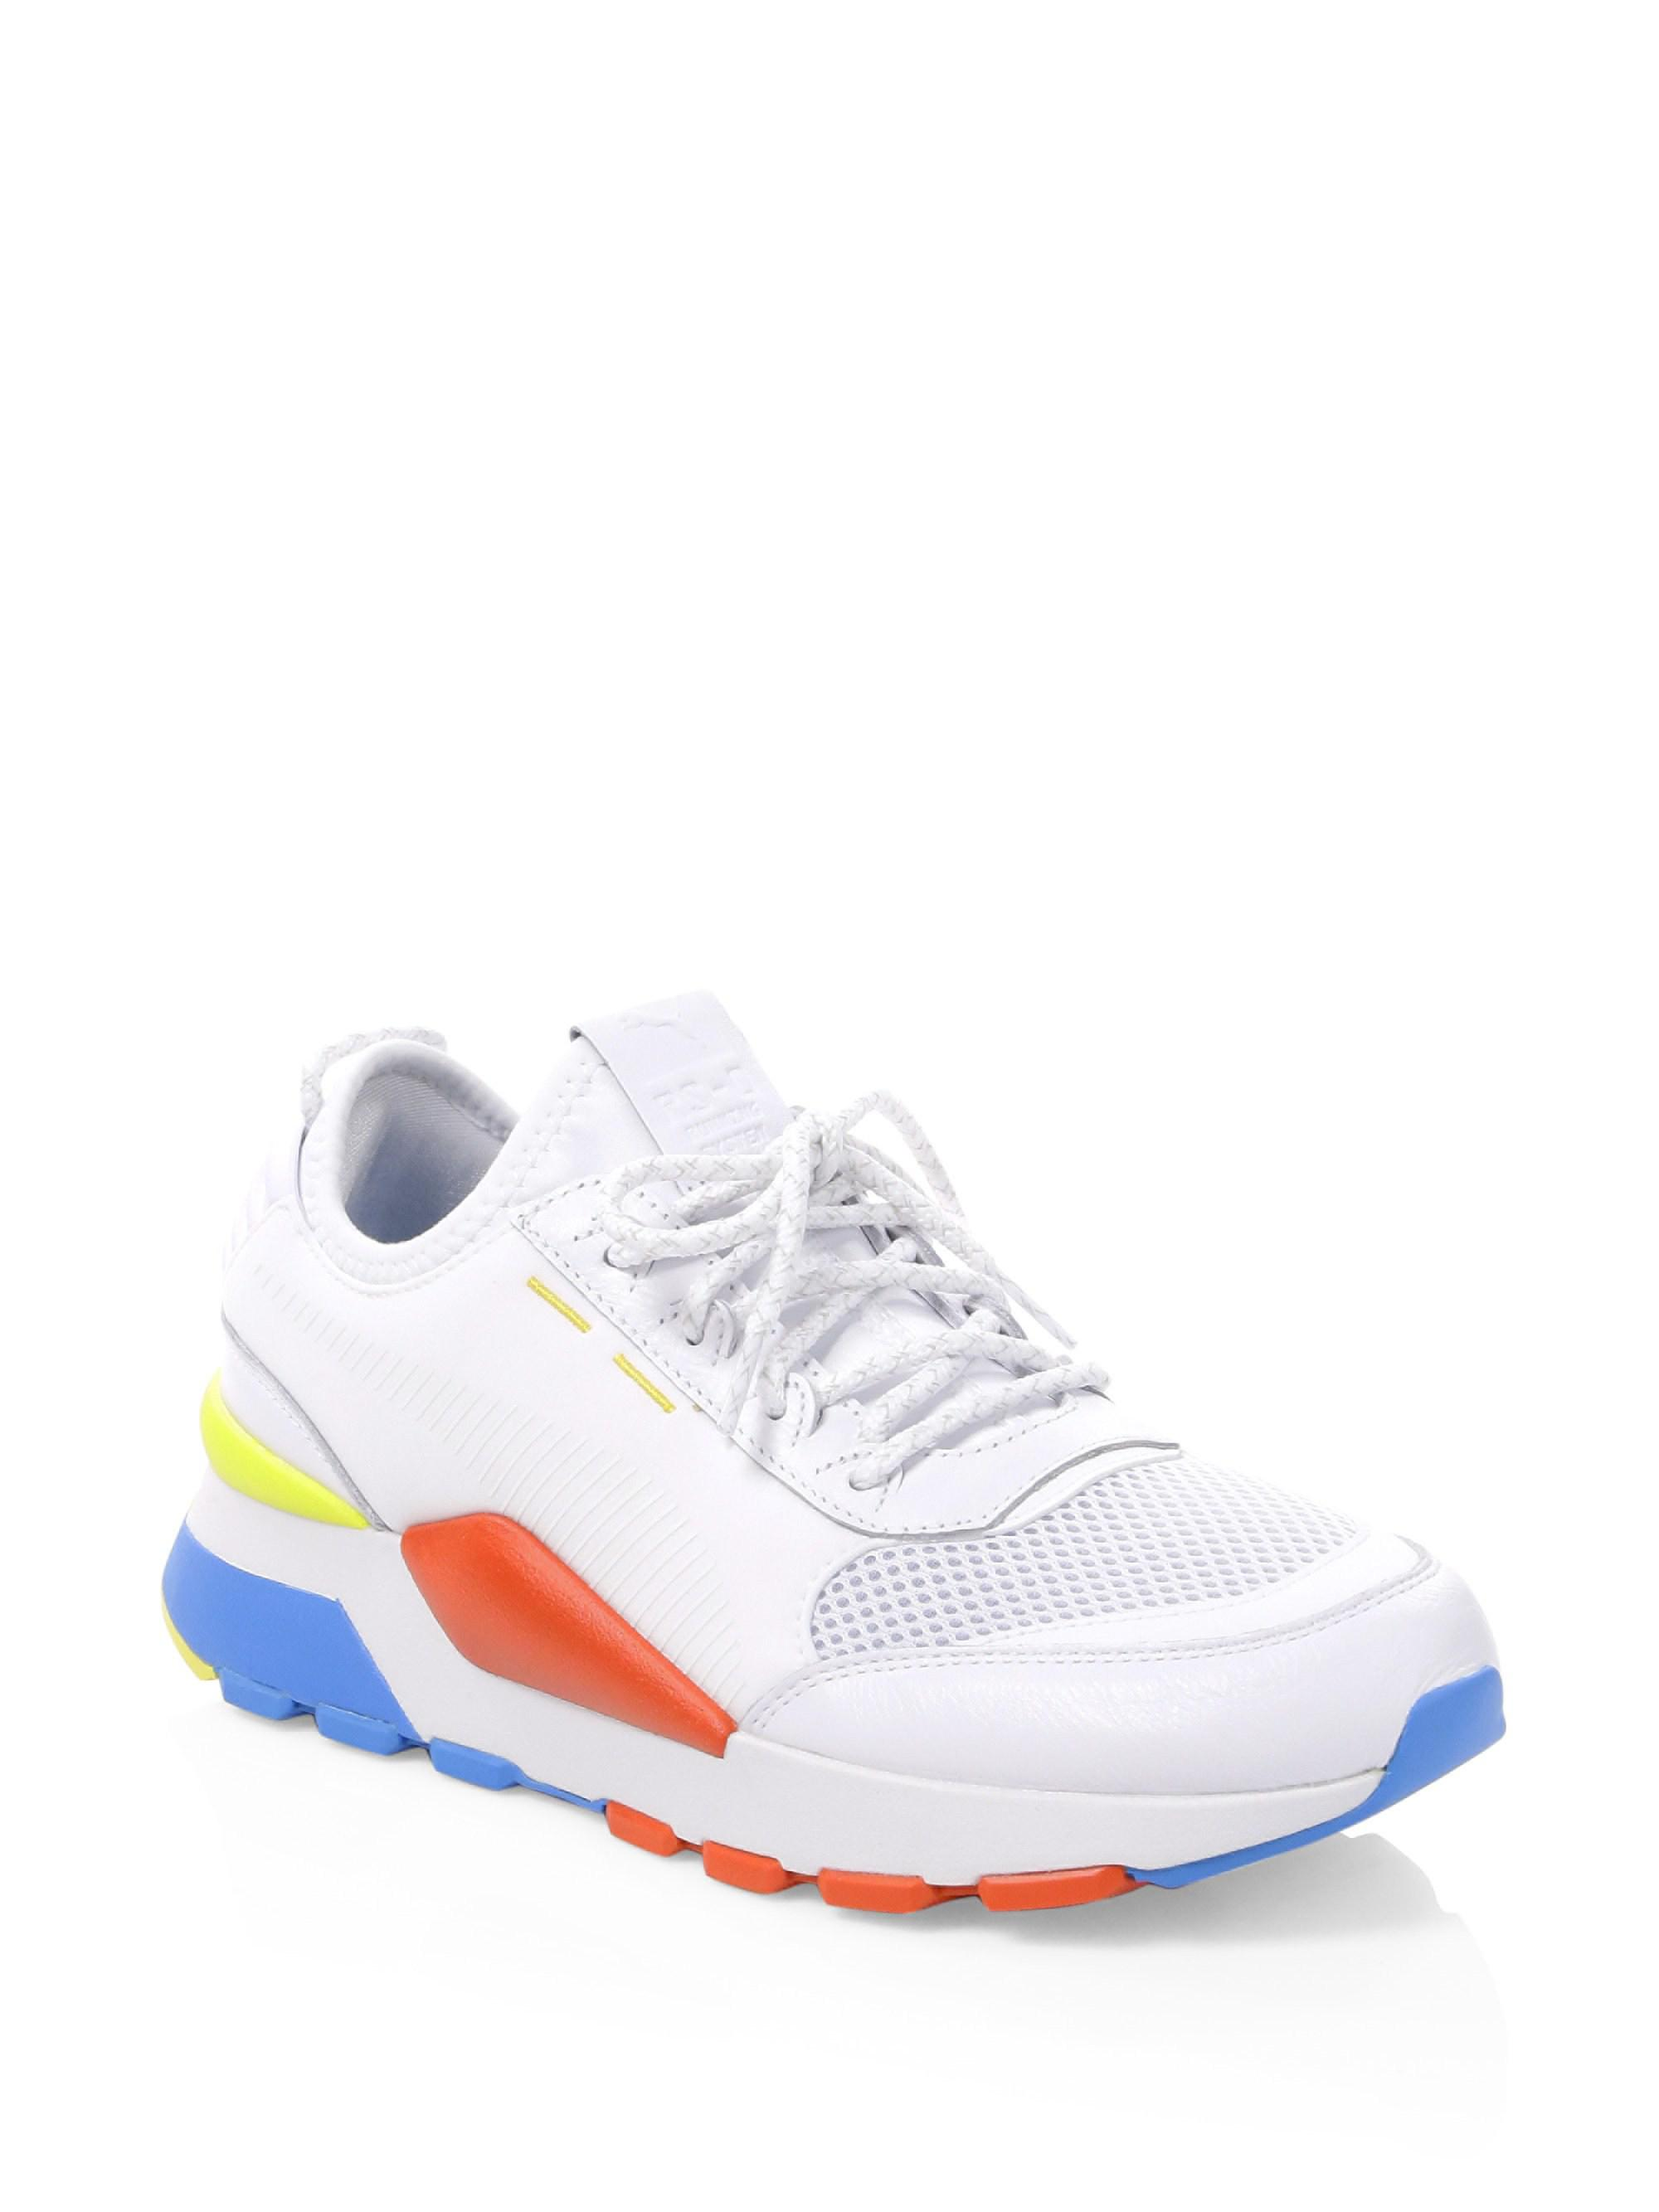 b6597e77e5f Puma Play Colorblock Sneakers in White for Men - Lyst